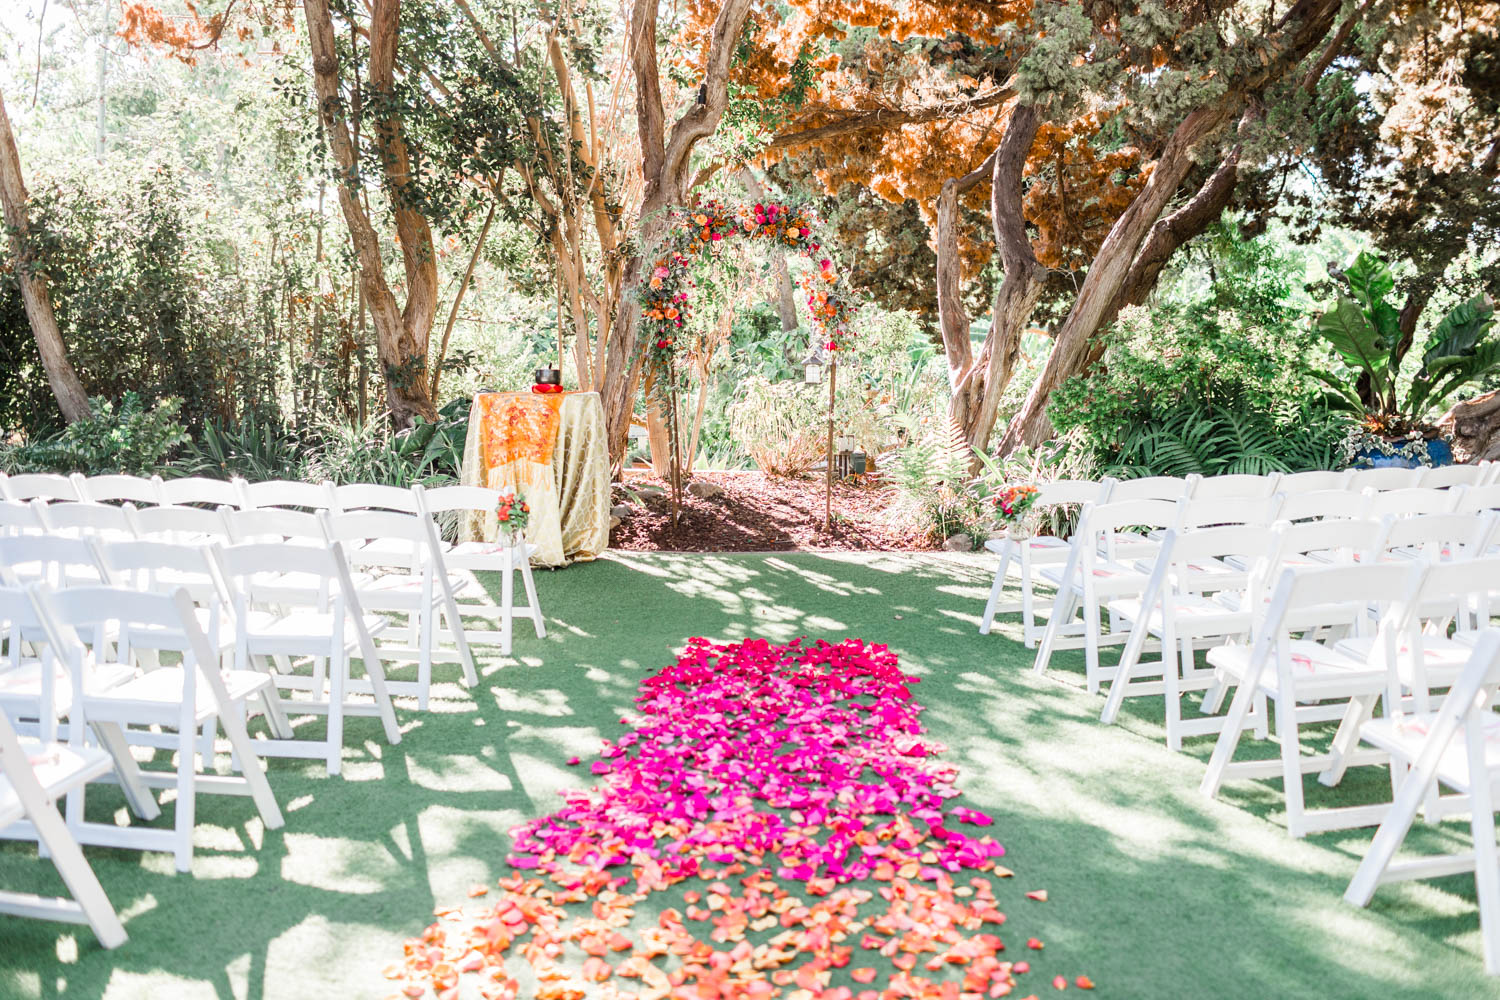 San Diego Botanic Garden Wedding | San Diego Botanic Garden Wedding In Encinitas